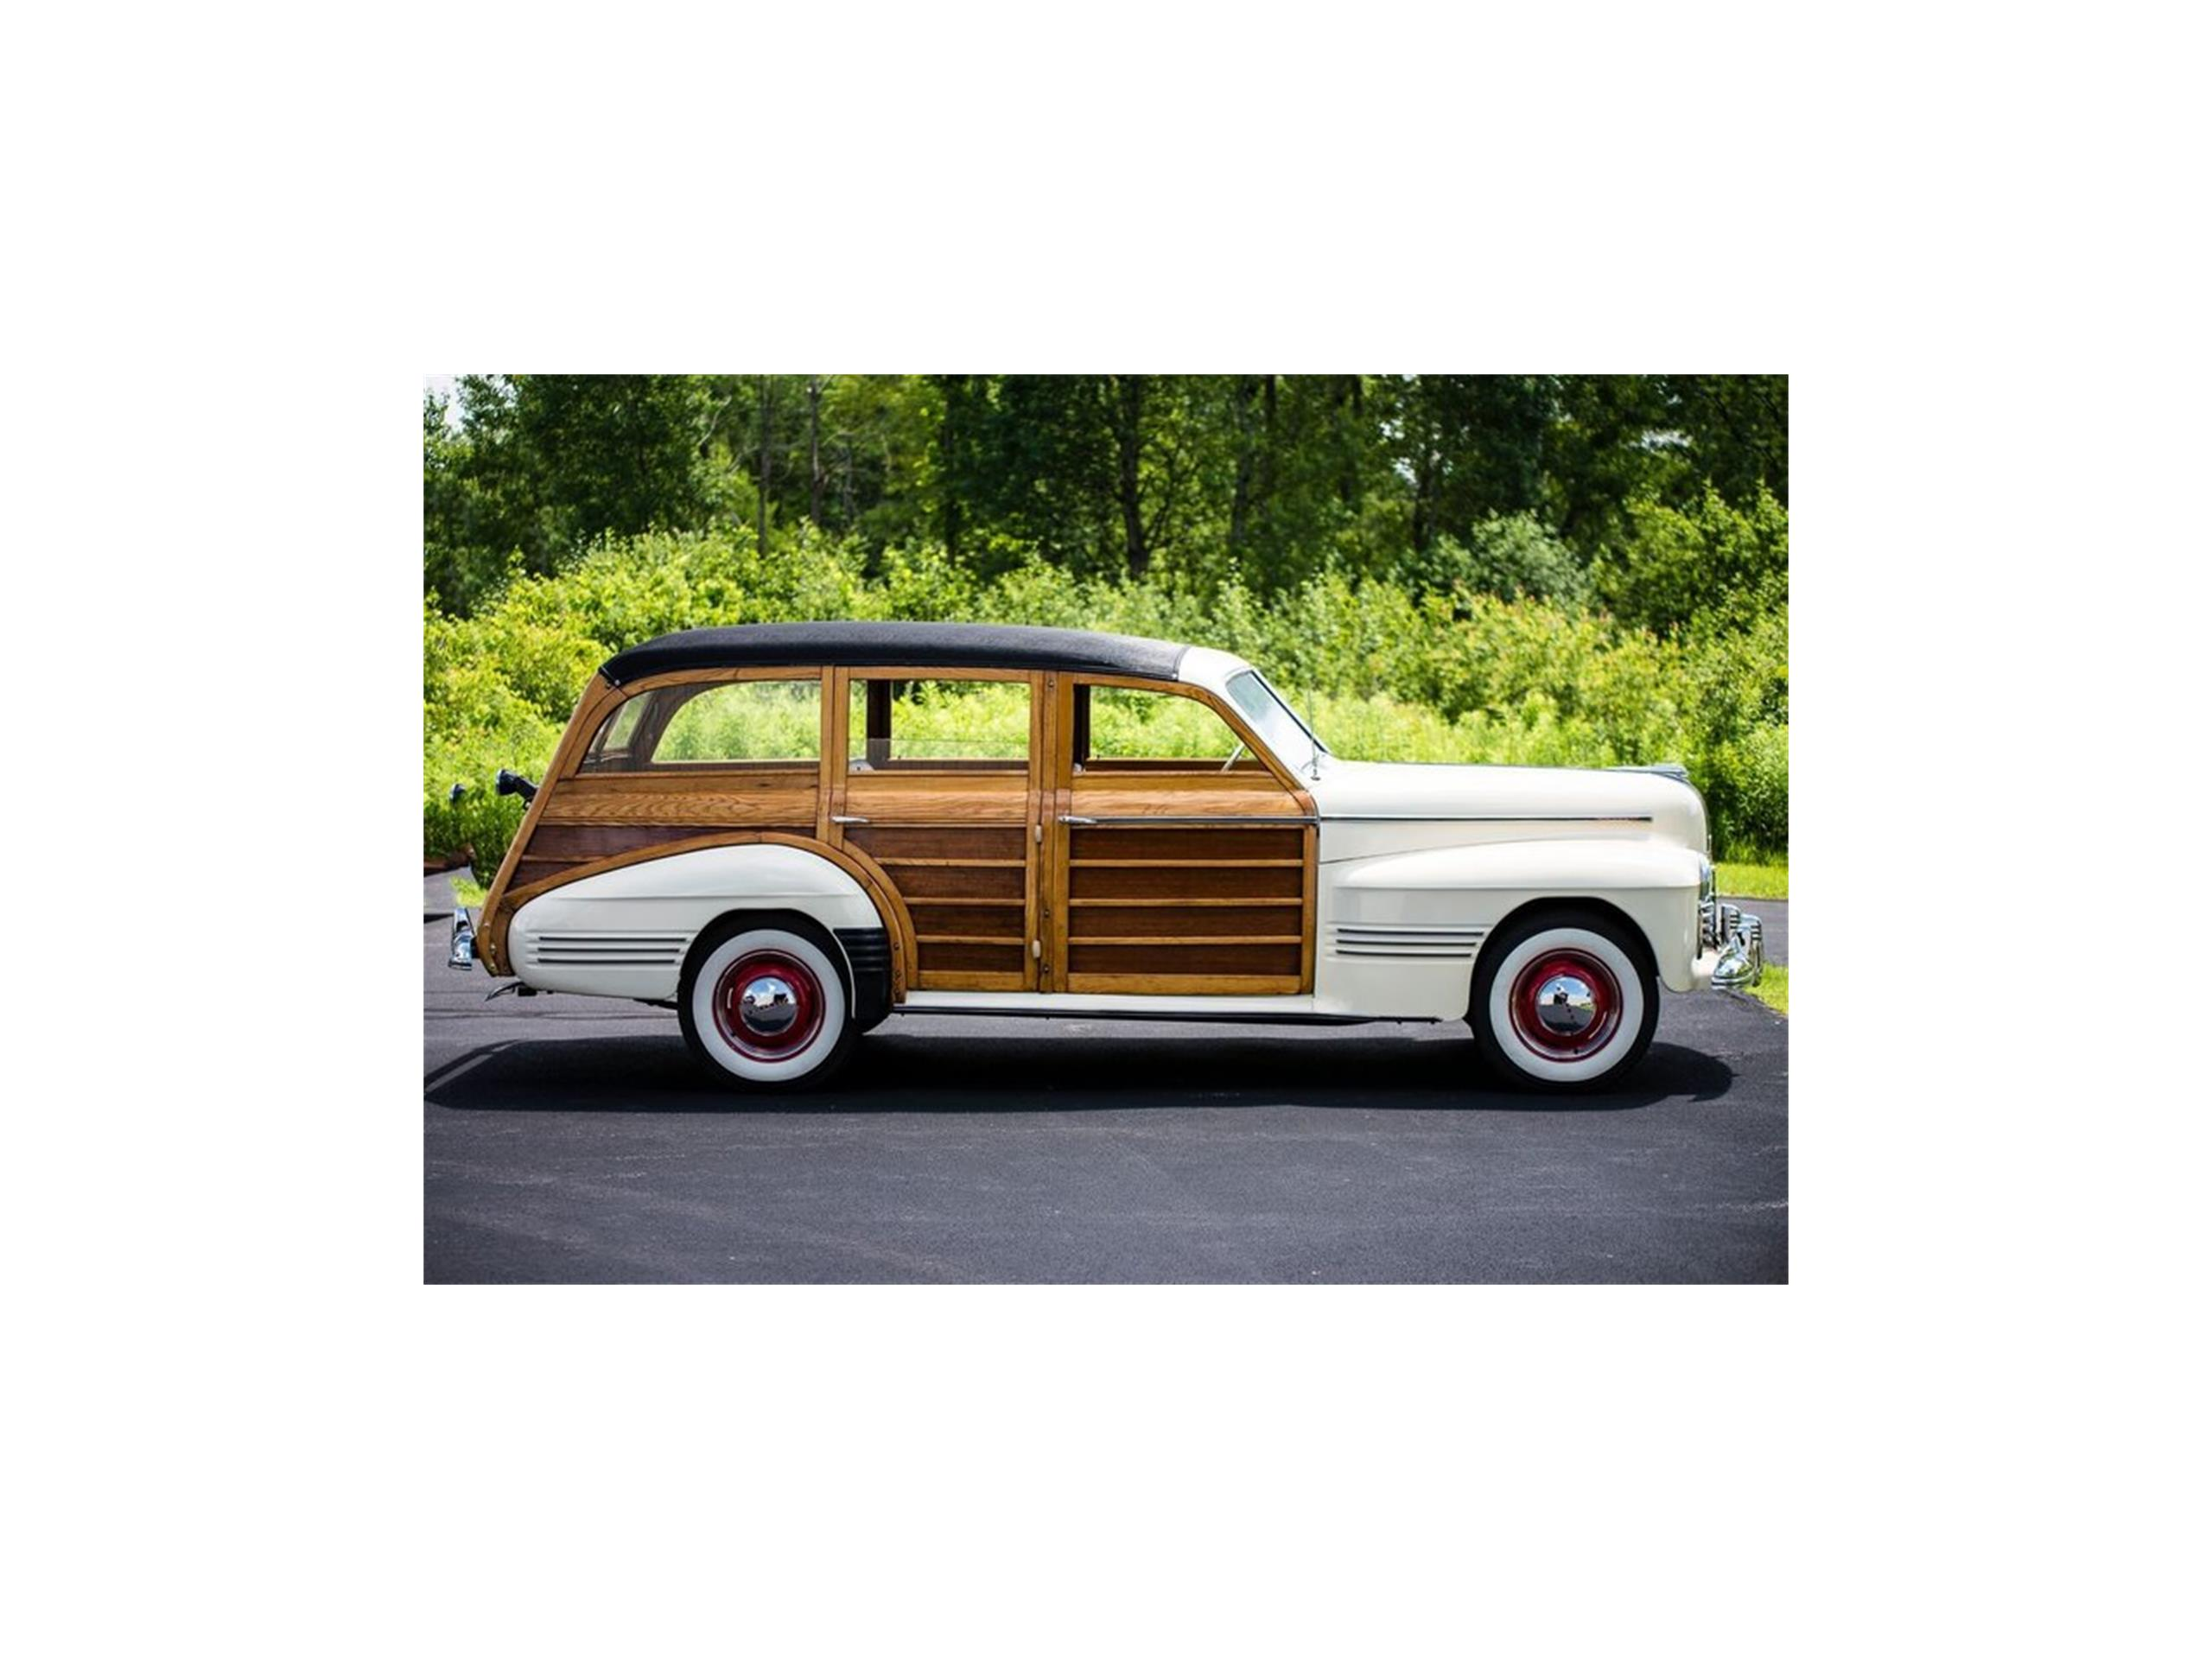 1941 Cadillac Series 61 Woodie Station Wagon 6 Plymouth Full Screen Woody Large Picture Of Classic 41 Pontiac Auction Vehicle